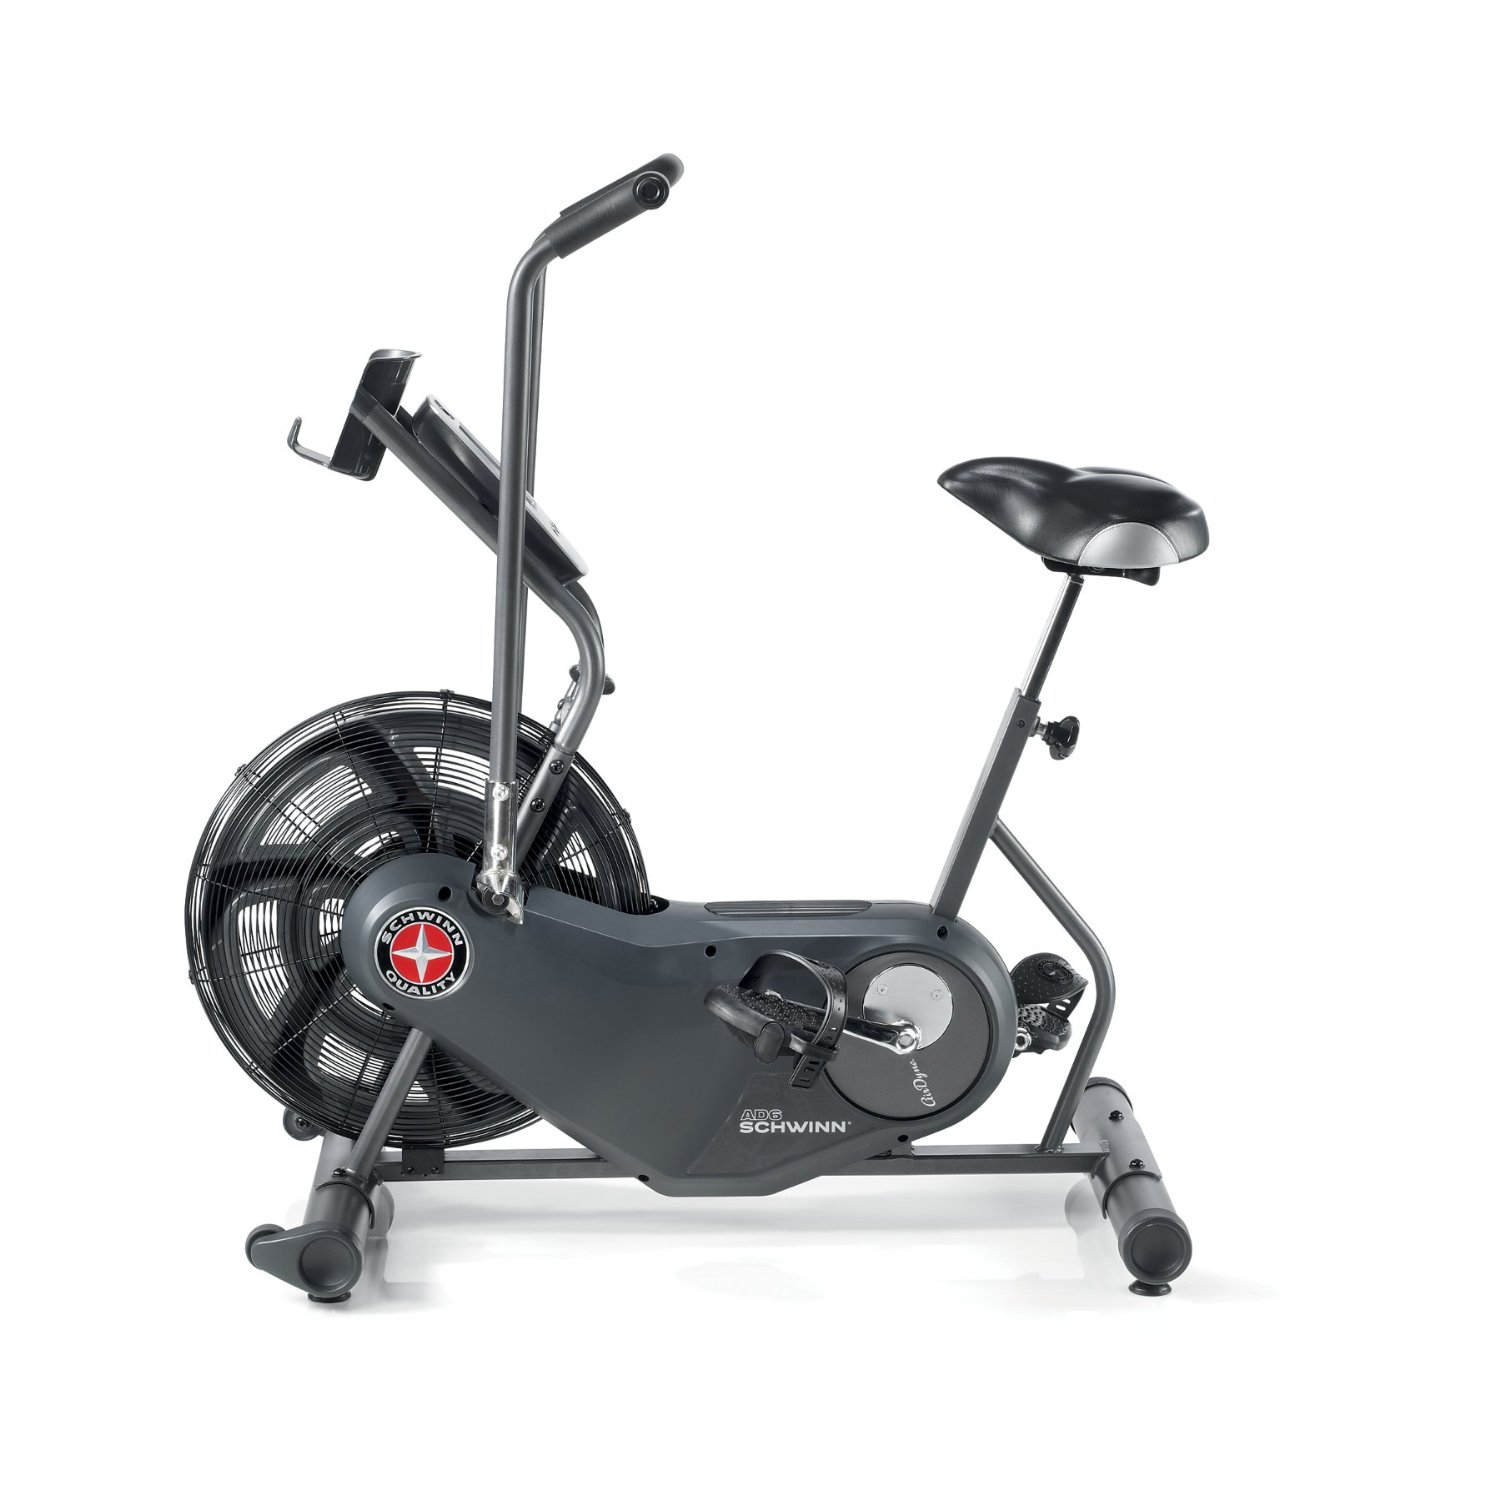 Schwinn AD6 Airdyne Reviews